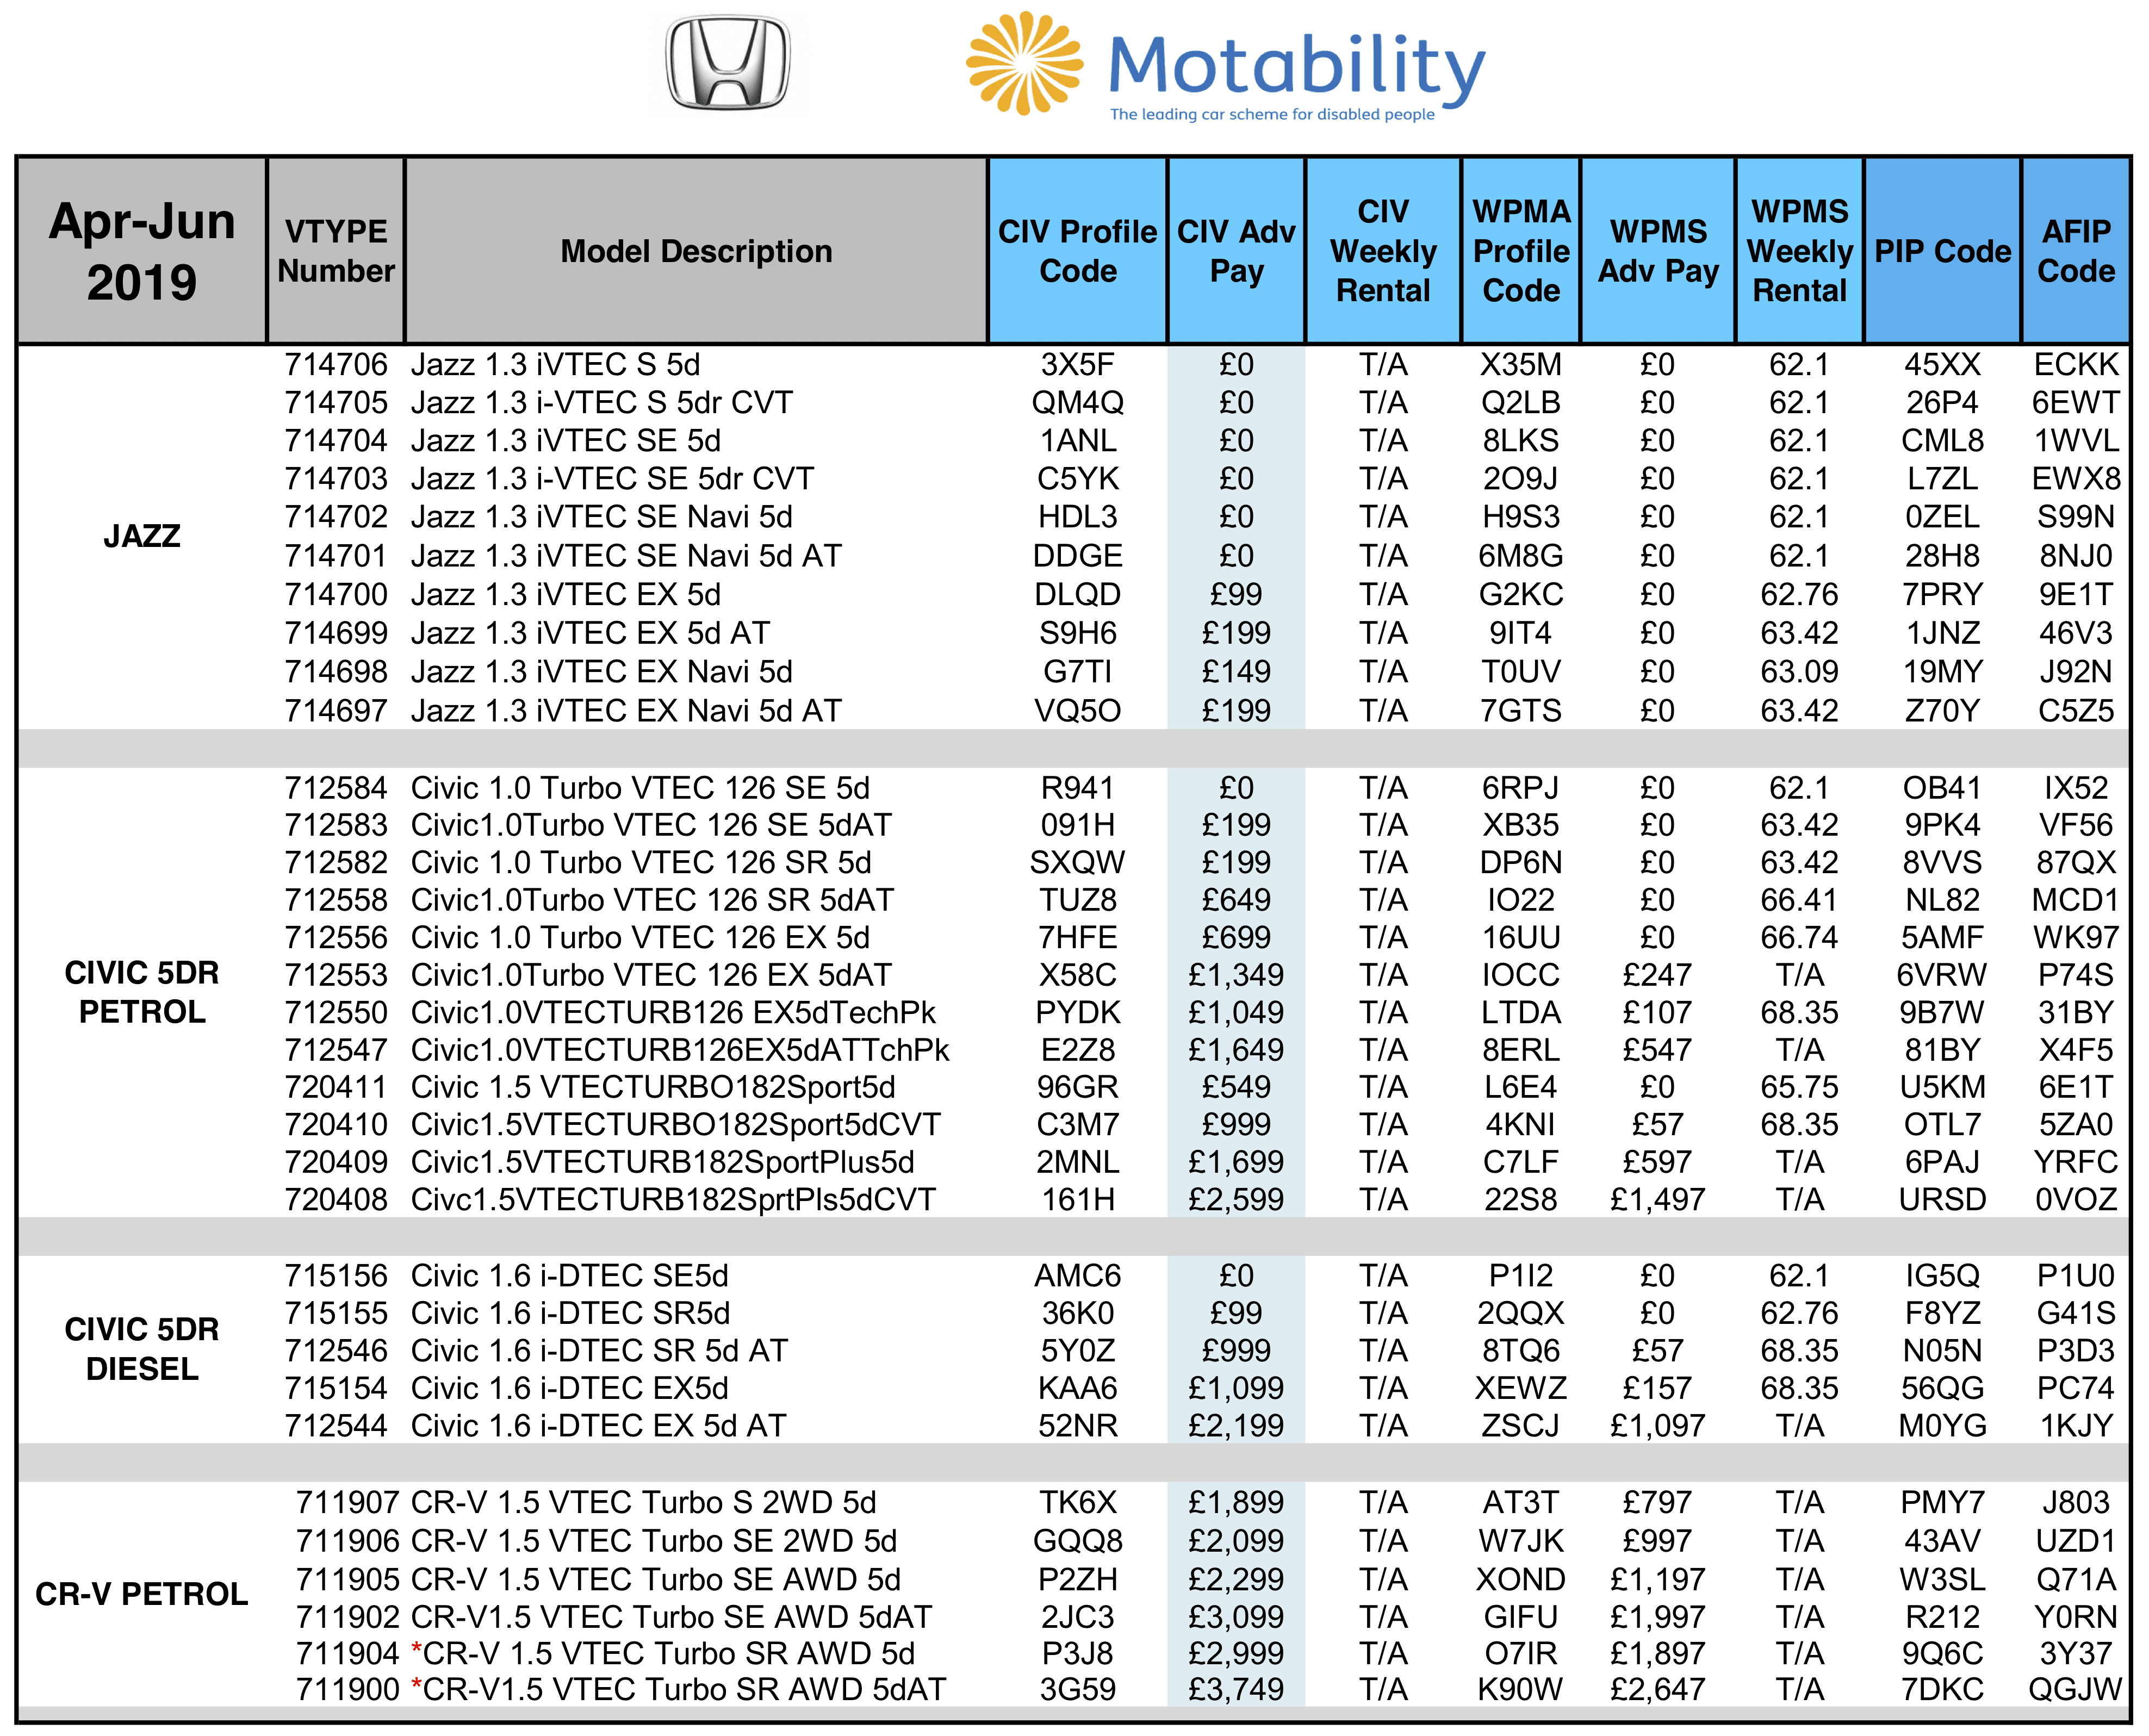 motability-price-list.png